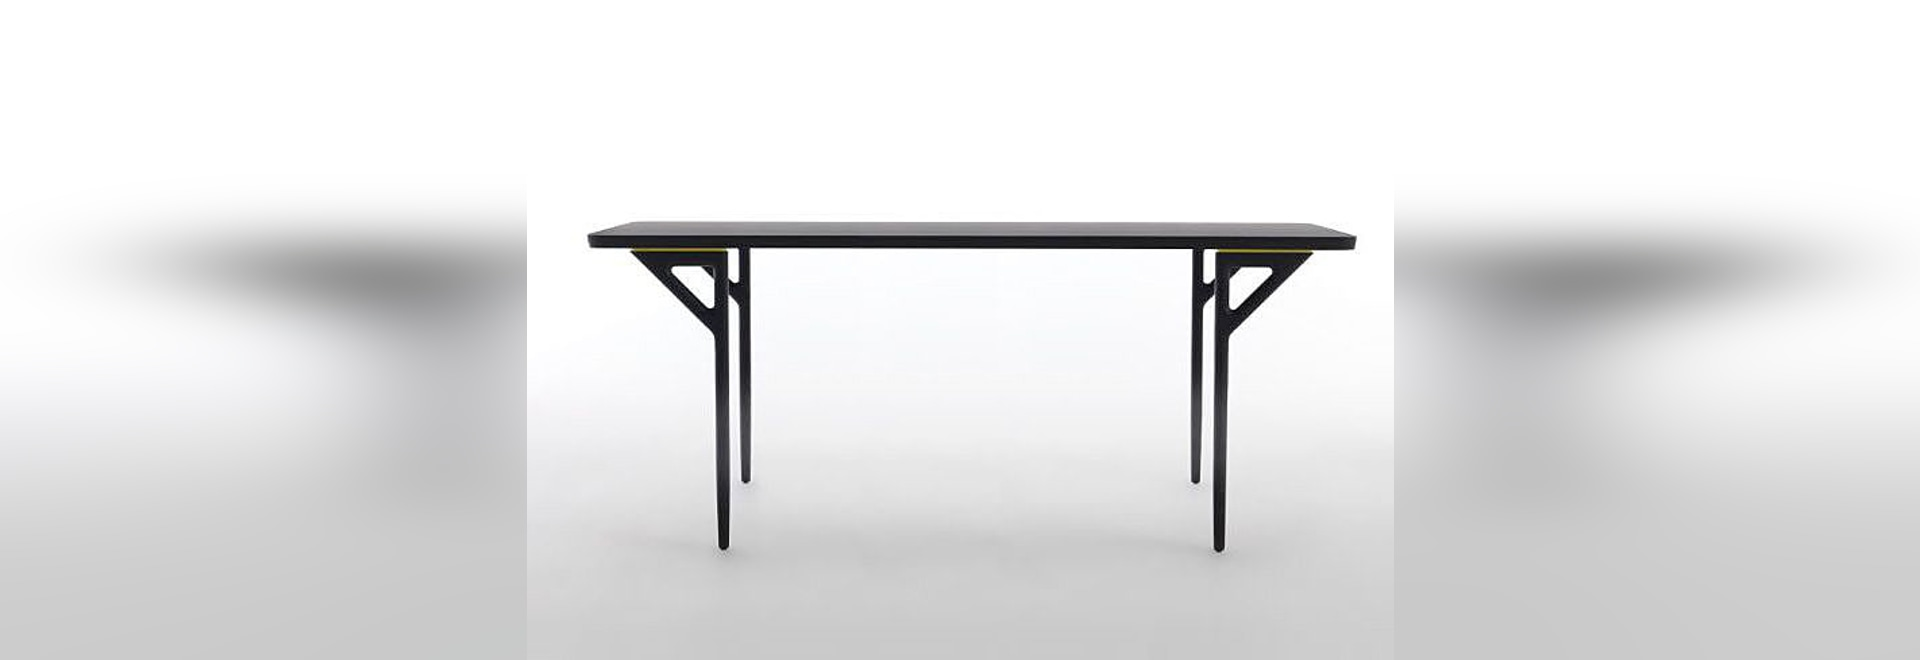 NEW: contemporary table by HORM.IT